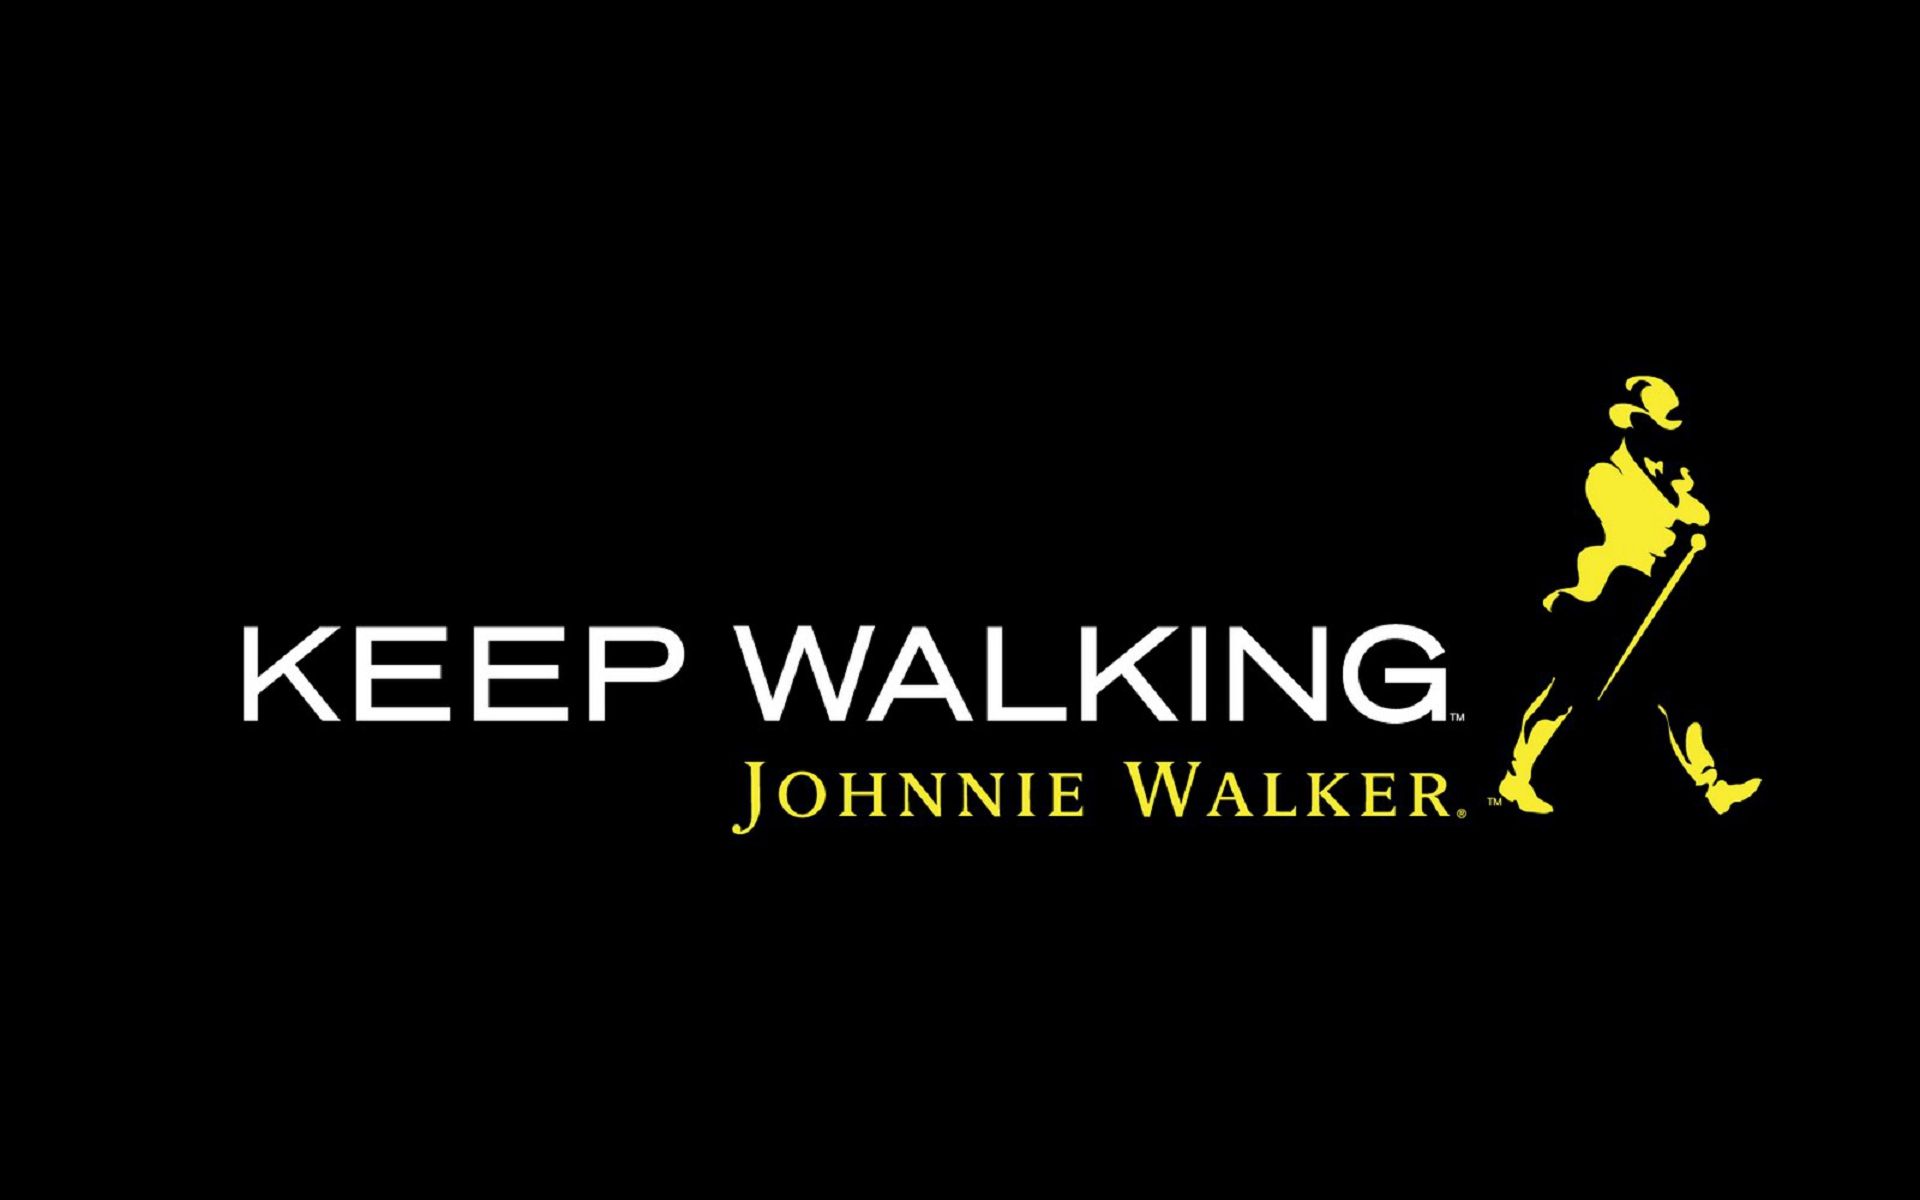 Johnnie Walker Hd Wallpaper